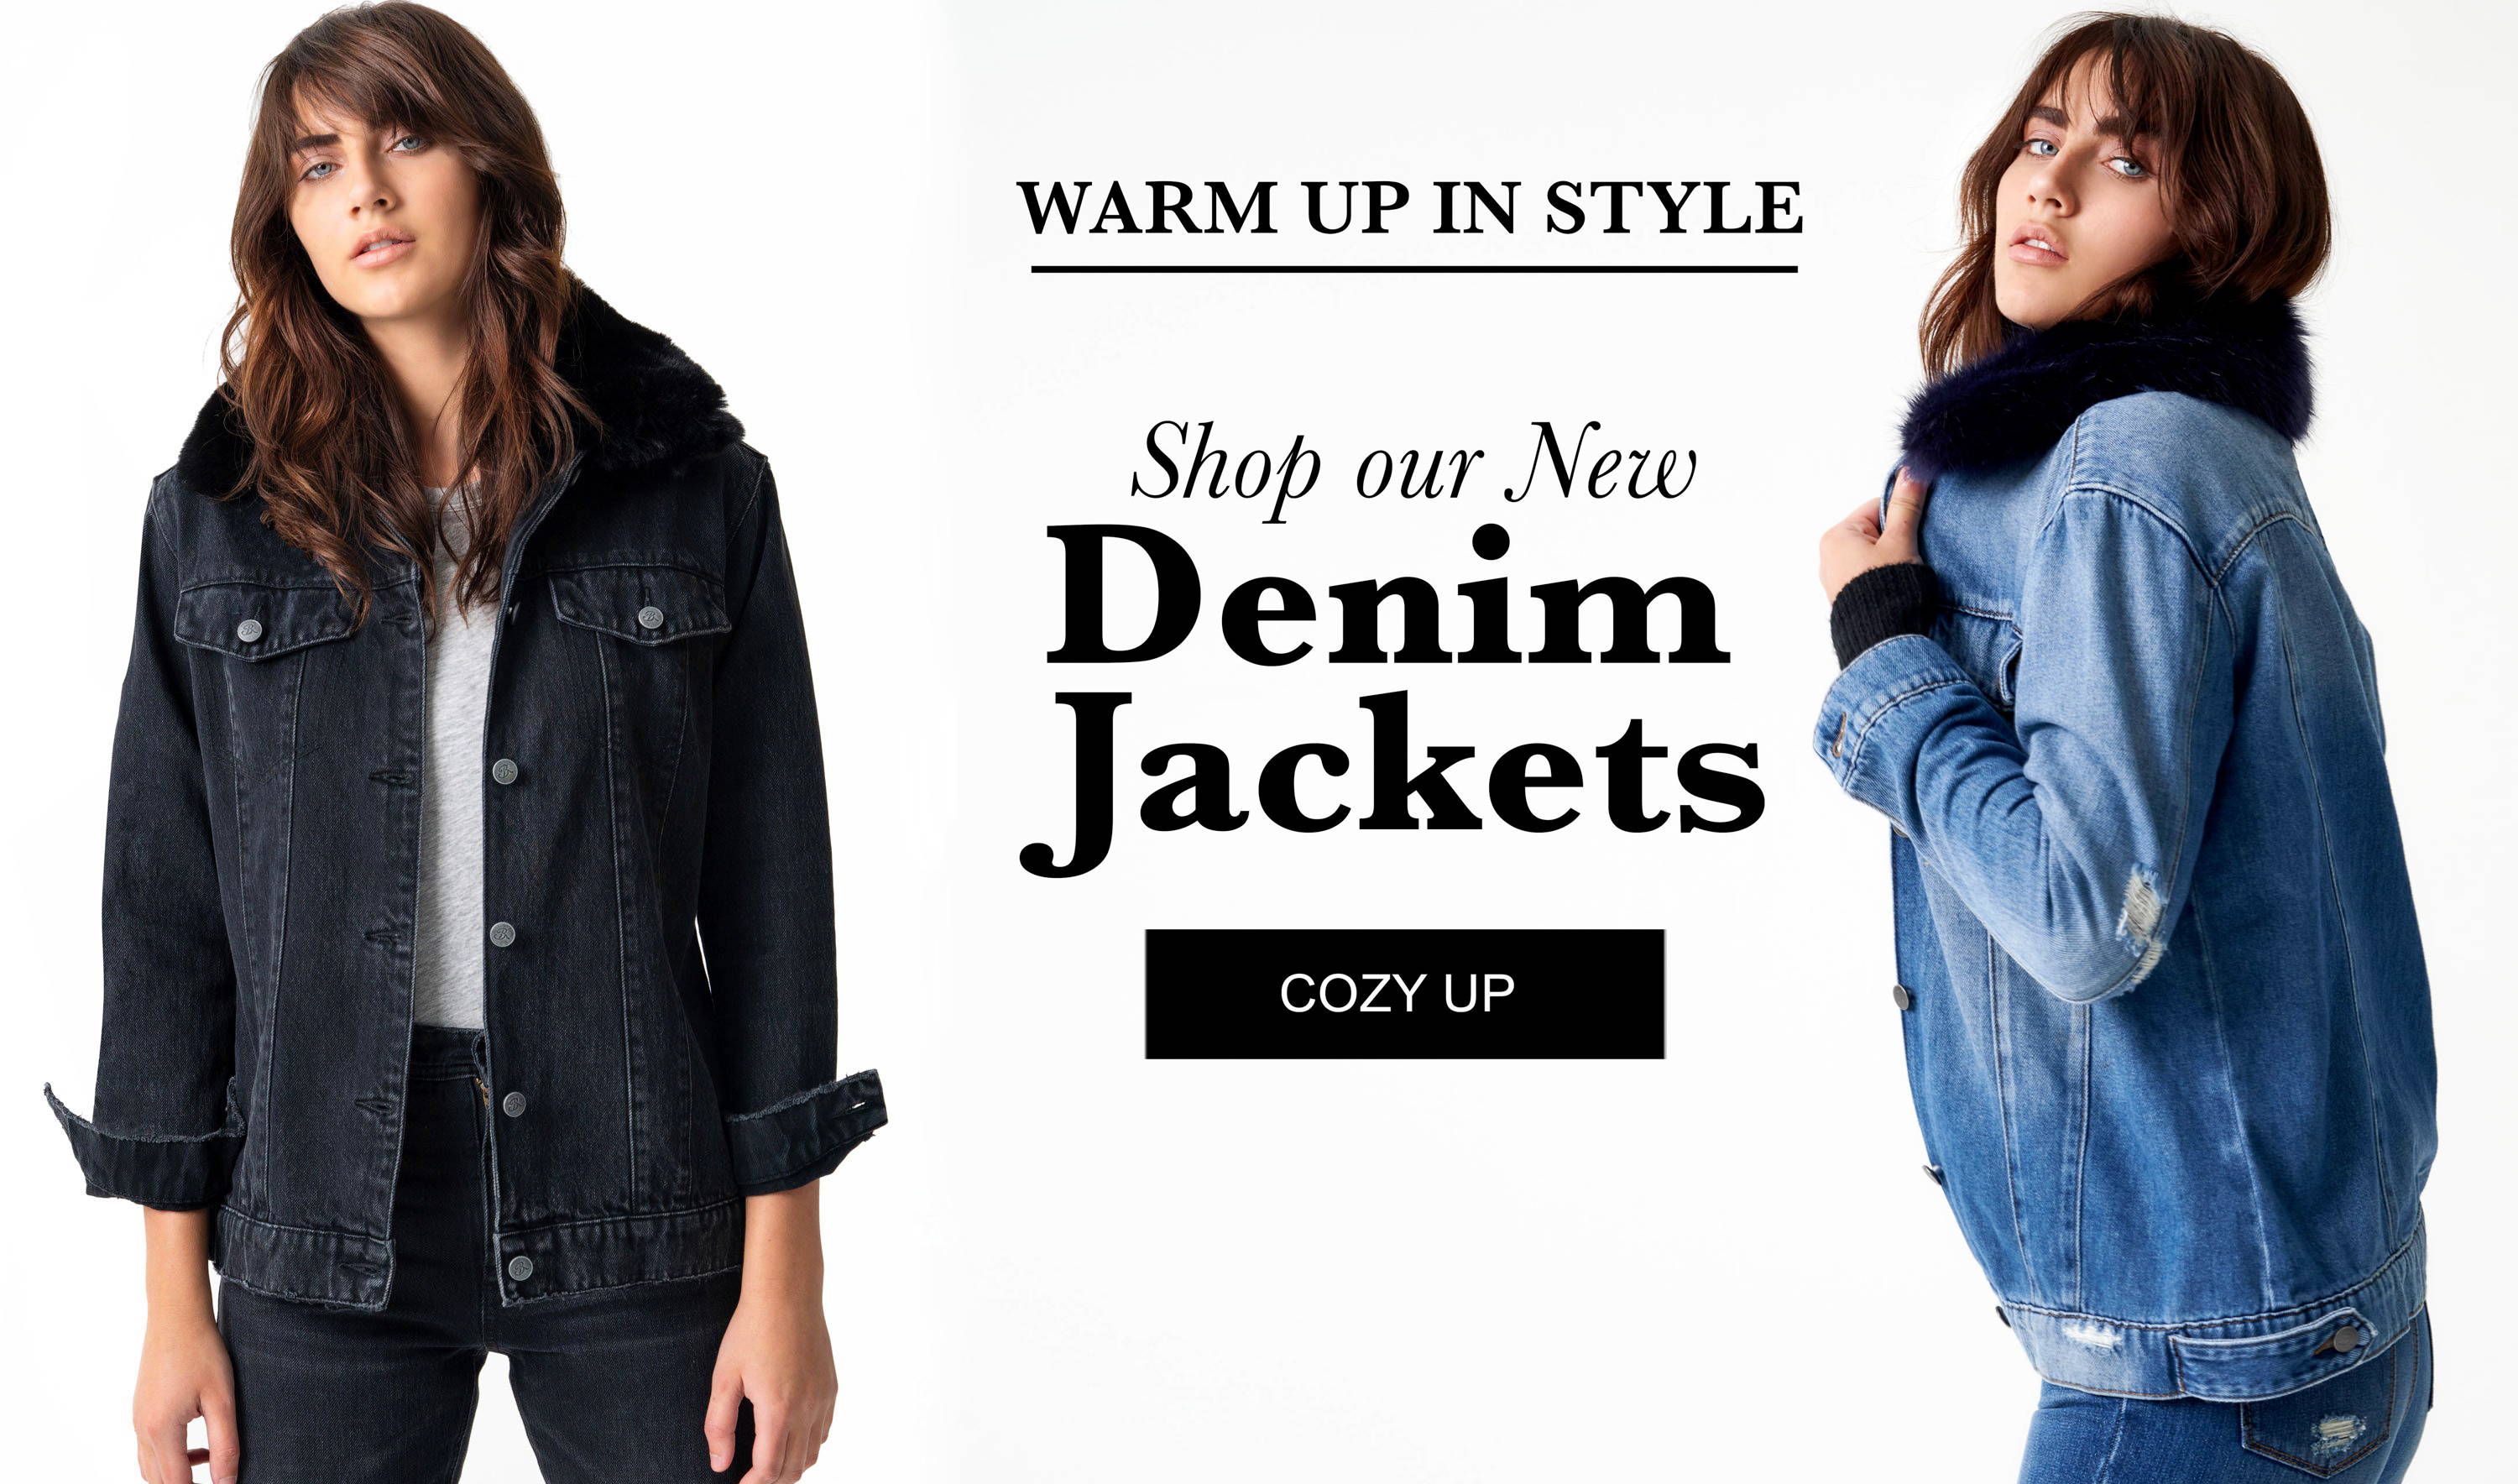 The Blue Revival Trucker Denim Jacket In Manchester Wash Has An Incredibly Soft Navy Faux Fur Detachable Collar. This Trucker Jacket Has Perfectly Placed Destruction Which Allows You To Feel Like You Have Owned This Jacket For Years. This Denim Jacket Is The Definition Of Elevated Casual Cool.